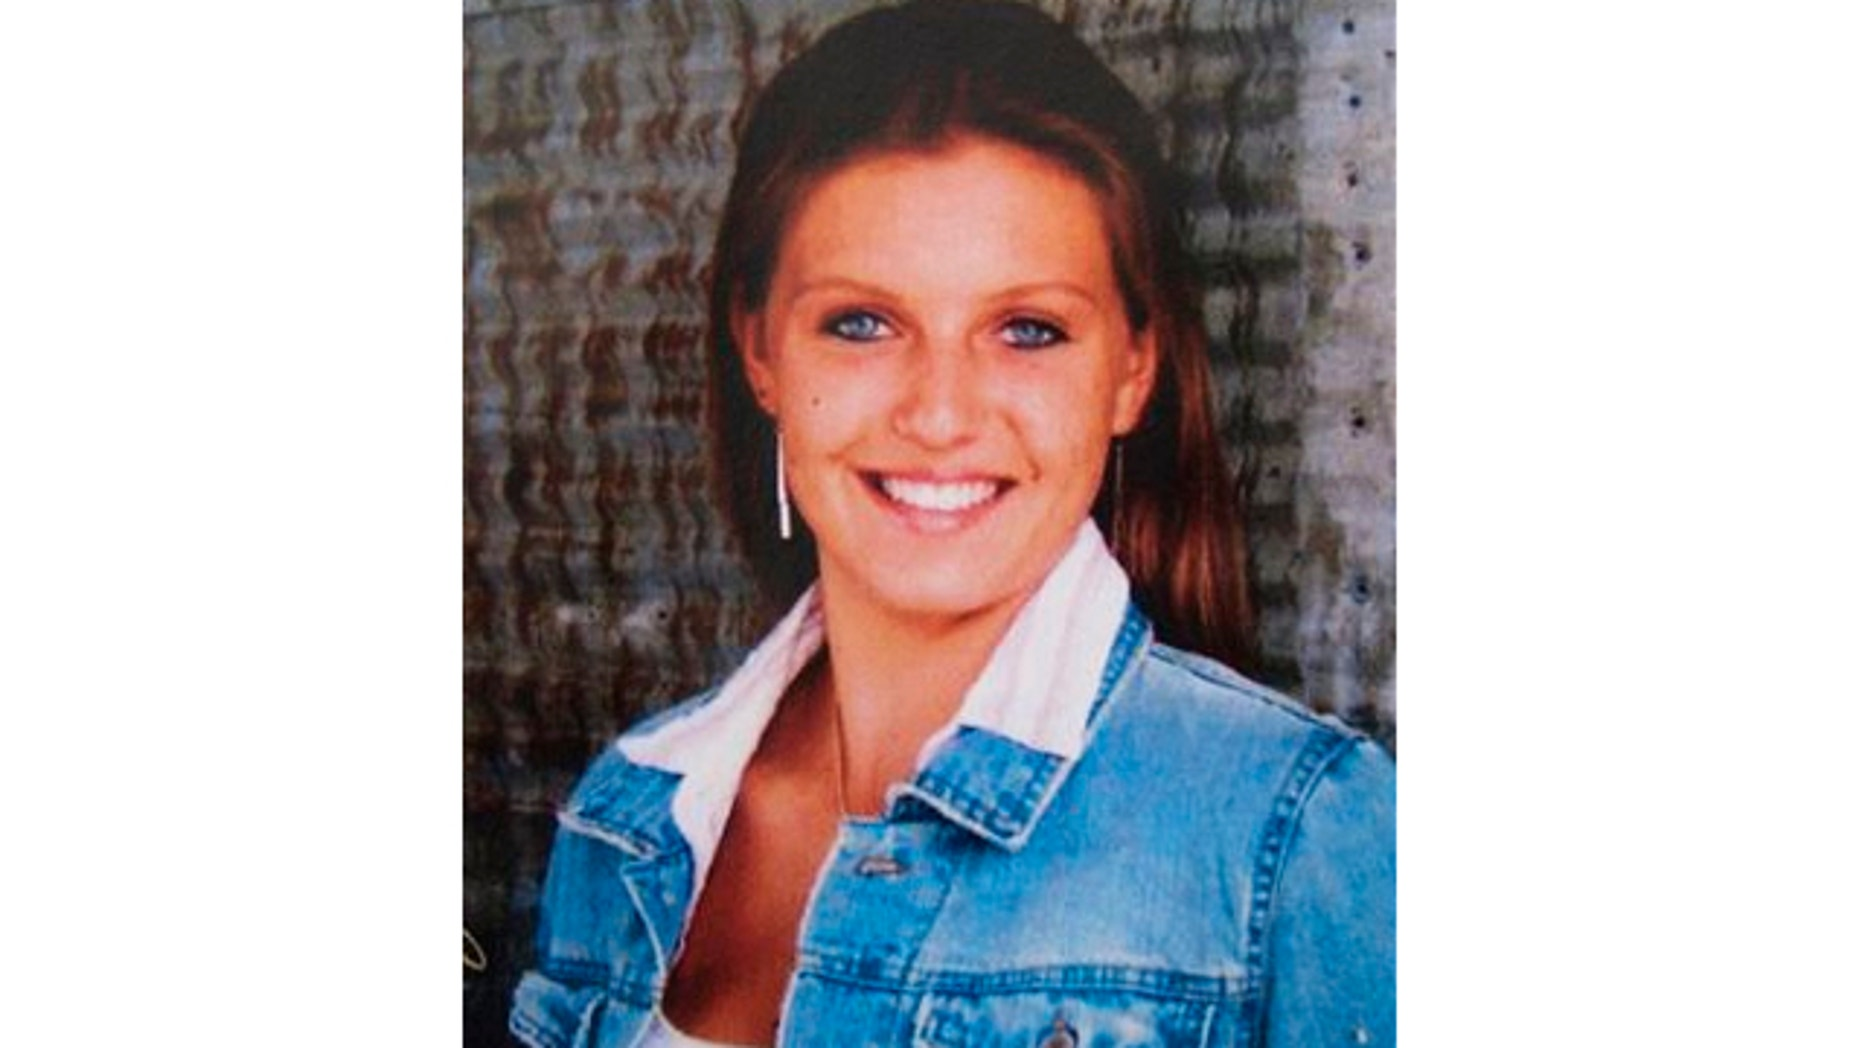 UNDATED: This photo provided by the Eden Prairie Police via The Star Tribune shows Mandy Marie Matula, who was last seen May 2.